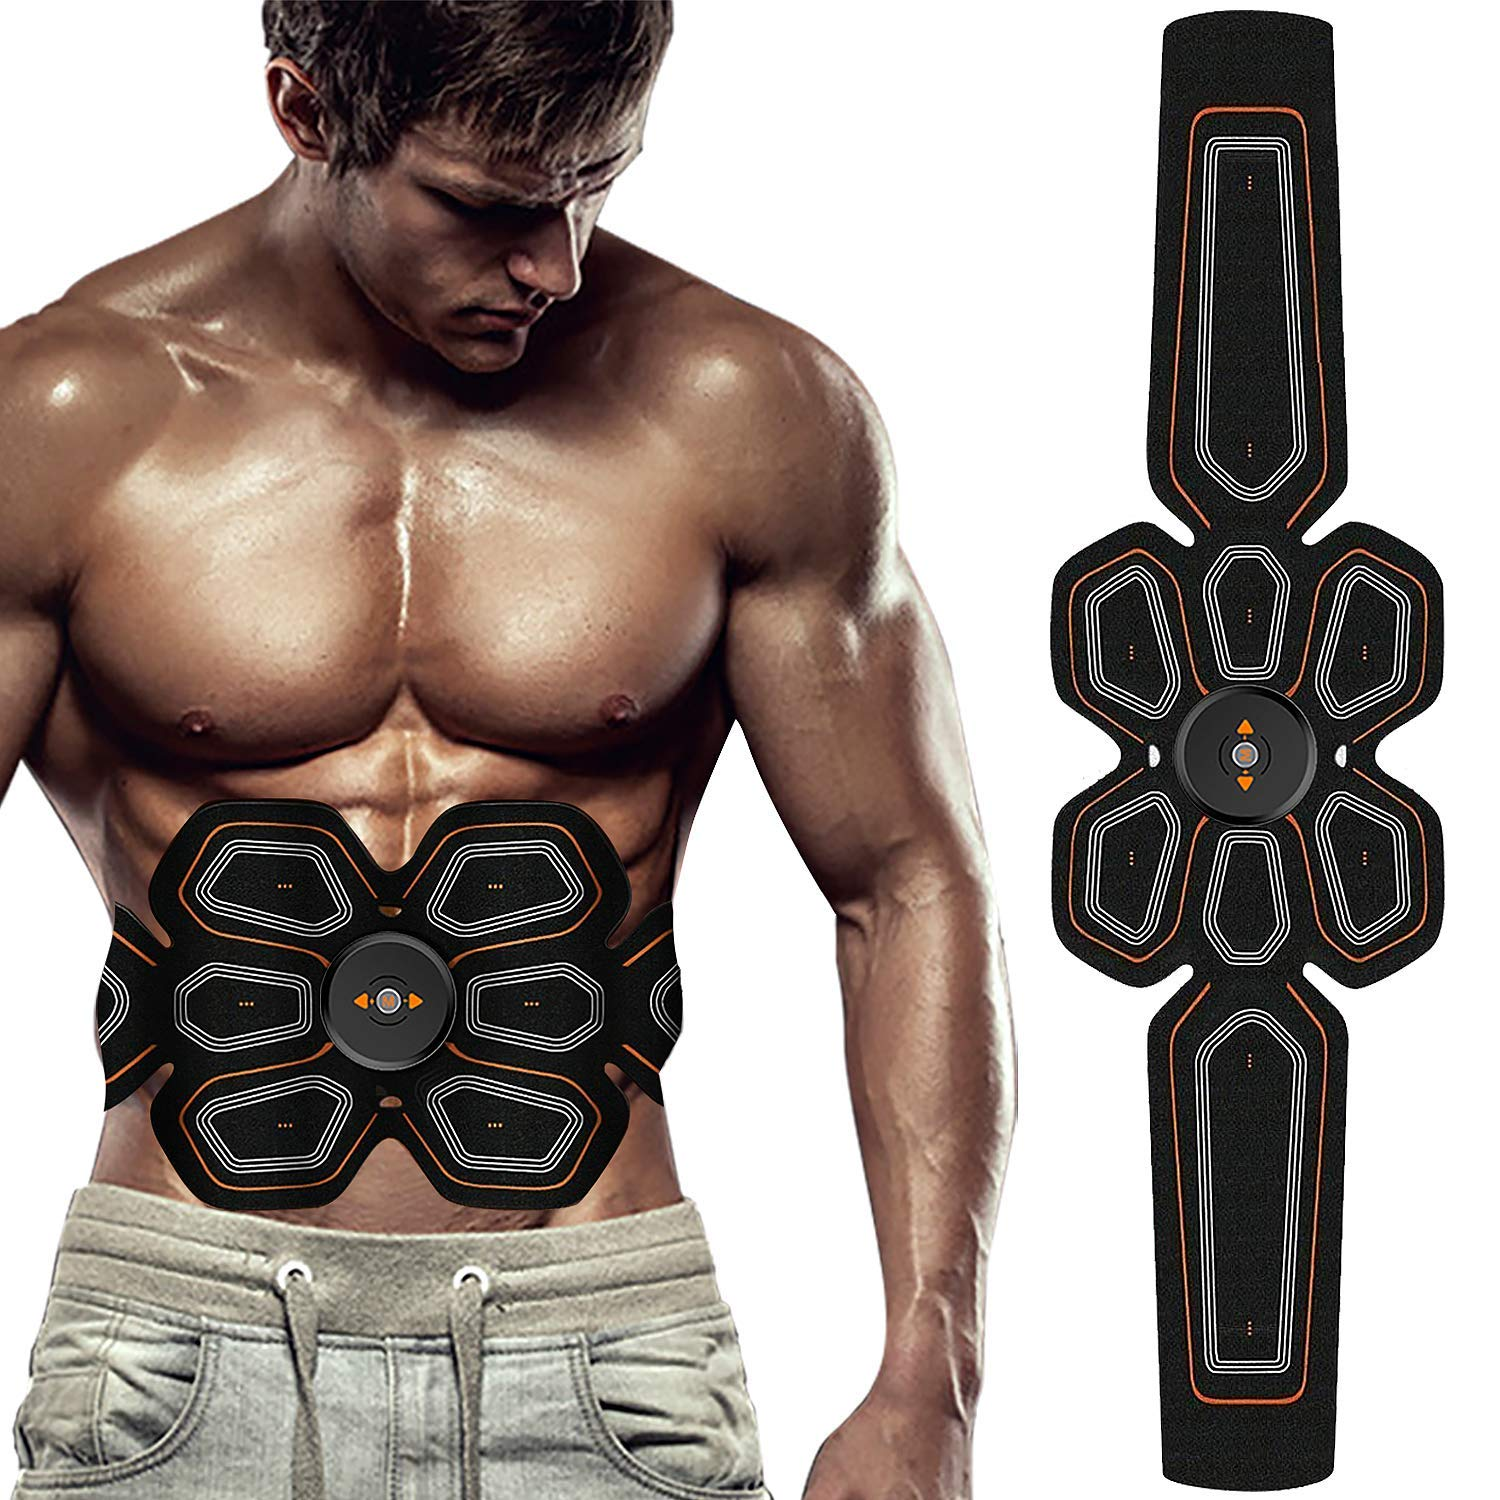 BLUE LOVE ABS Stimulator Muscle Toner Abdominal Toning Belt Workouts Portable EMS Training Home Office Fitness Equipment for Abdomen Arm Leg Training USB Charging